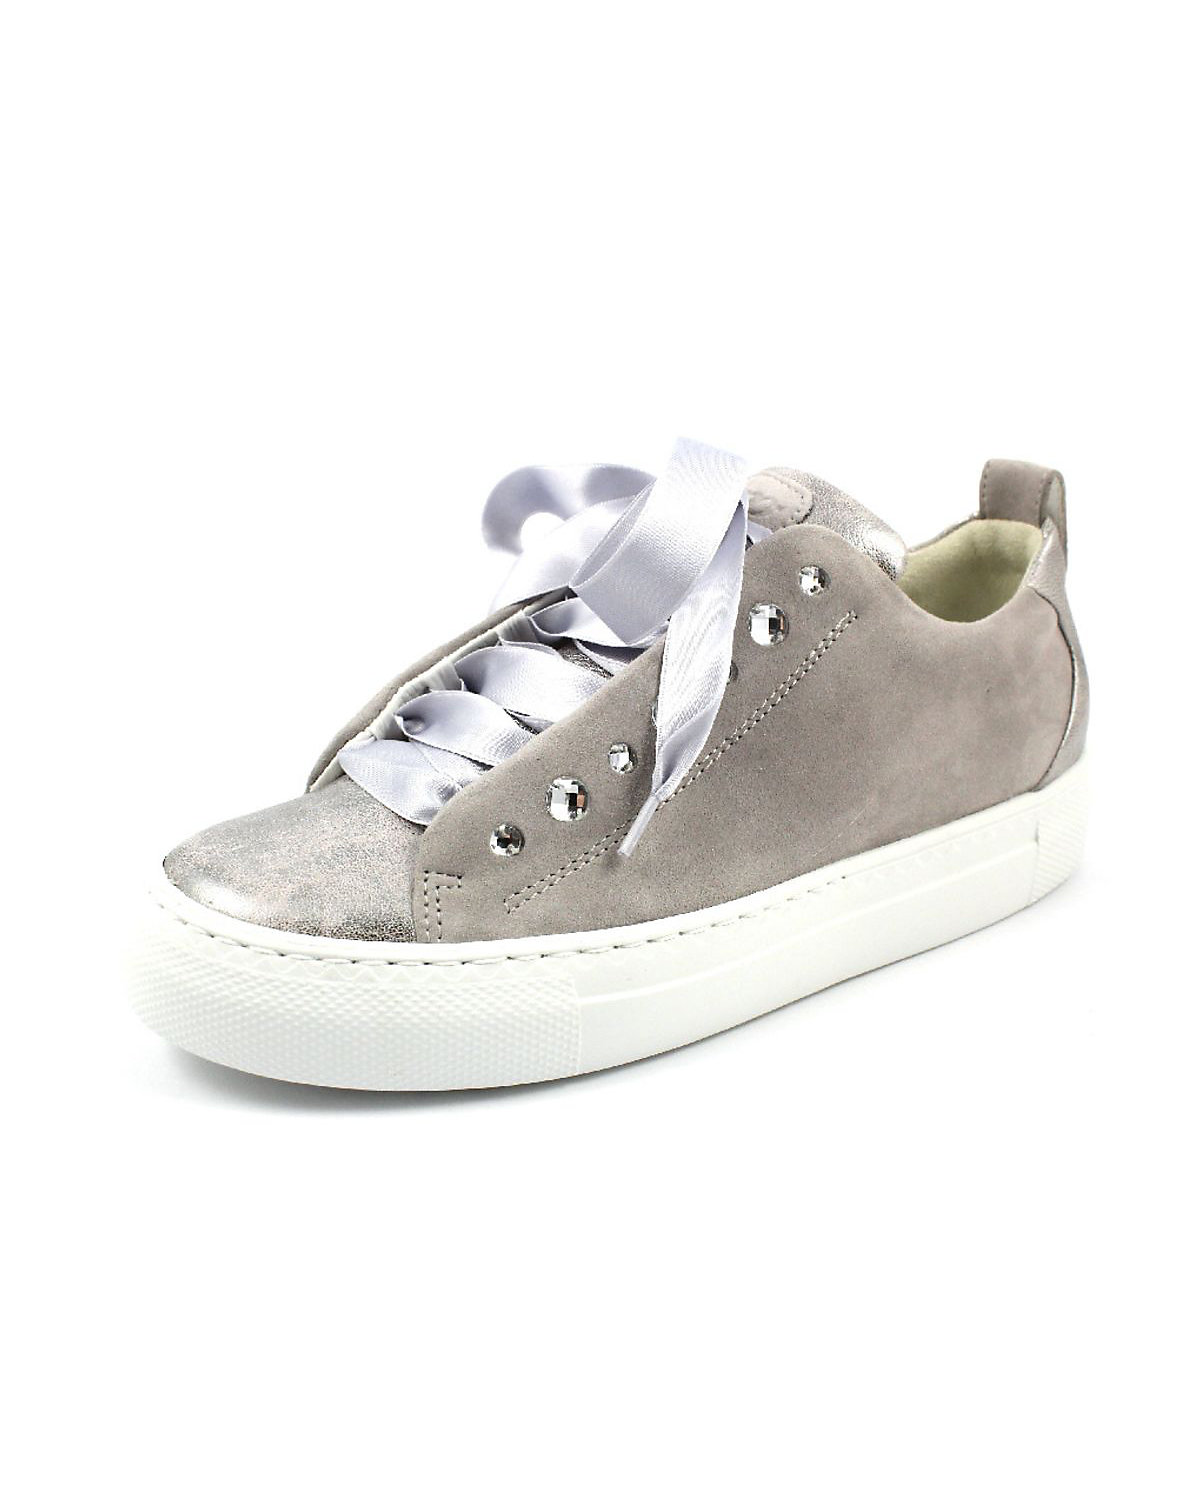 Paul Green, Sneakers Low, Low, Low, grau e7696e